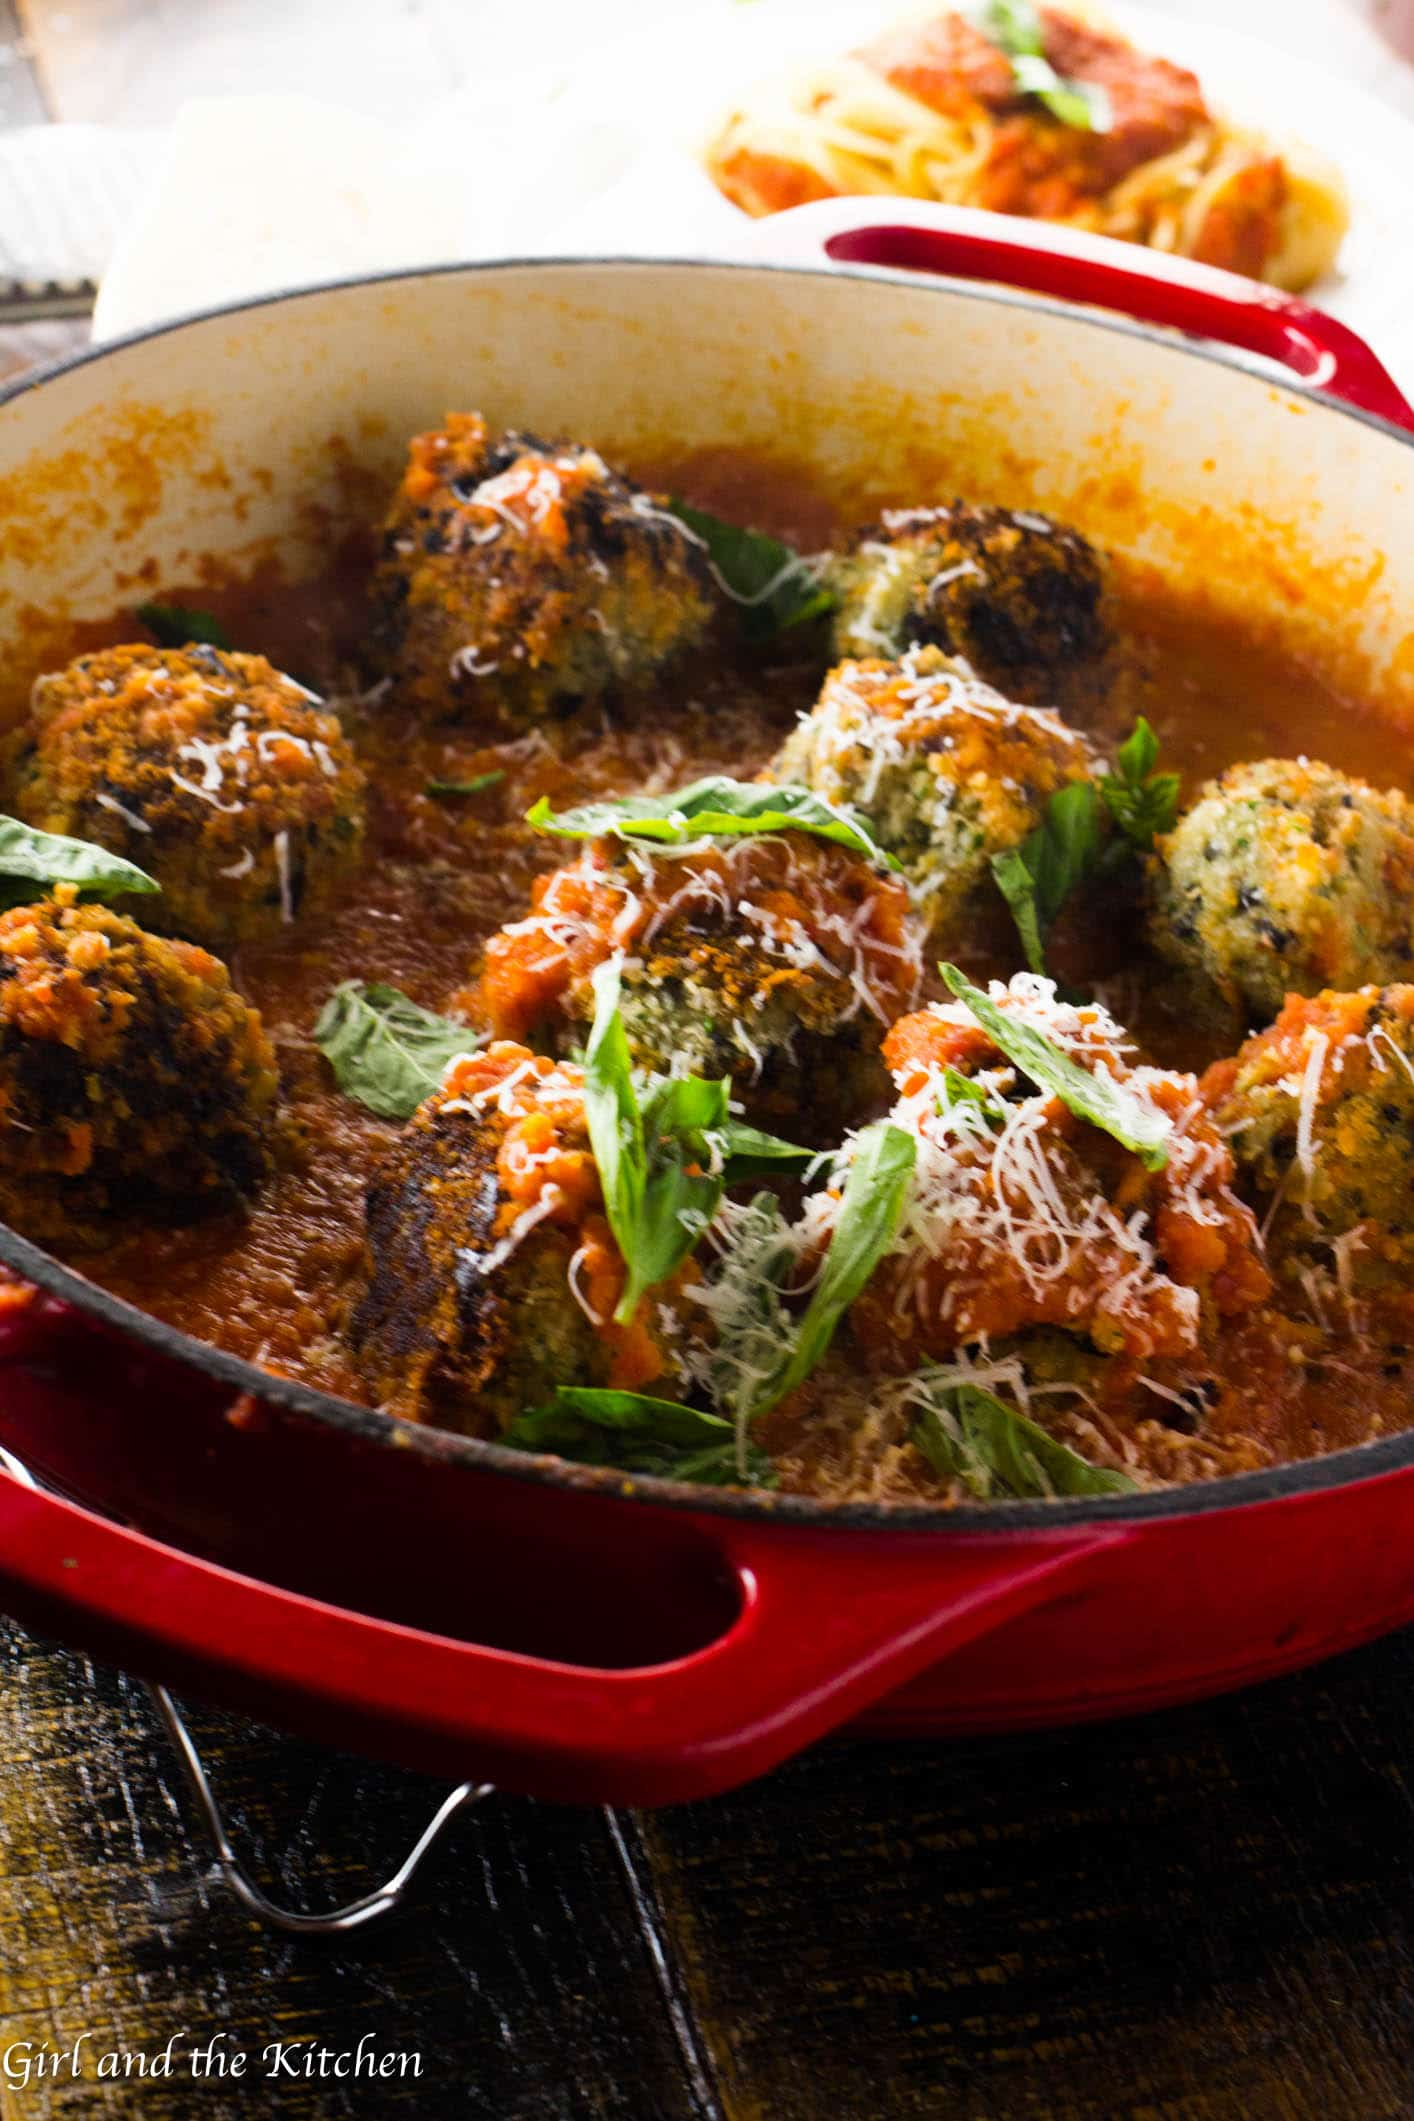 Crunchy on the outside and super tender on the inside! These gorgeous vegetarian meatballs are full of veggies and protein! Plus they are very easily converted into a vegan meal!